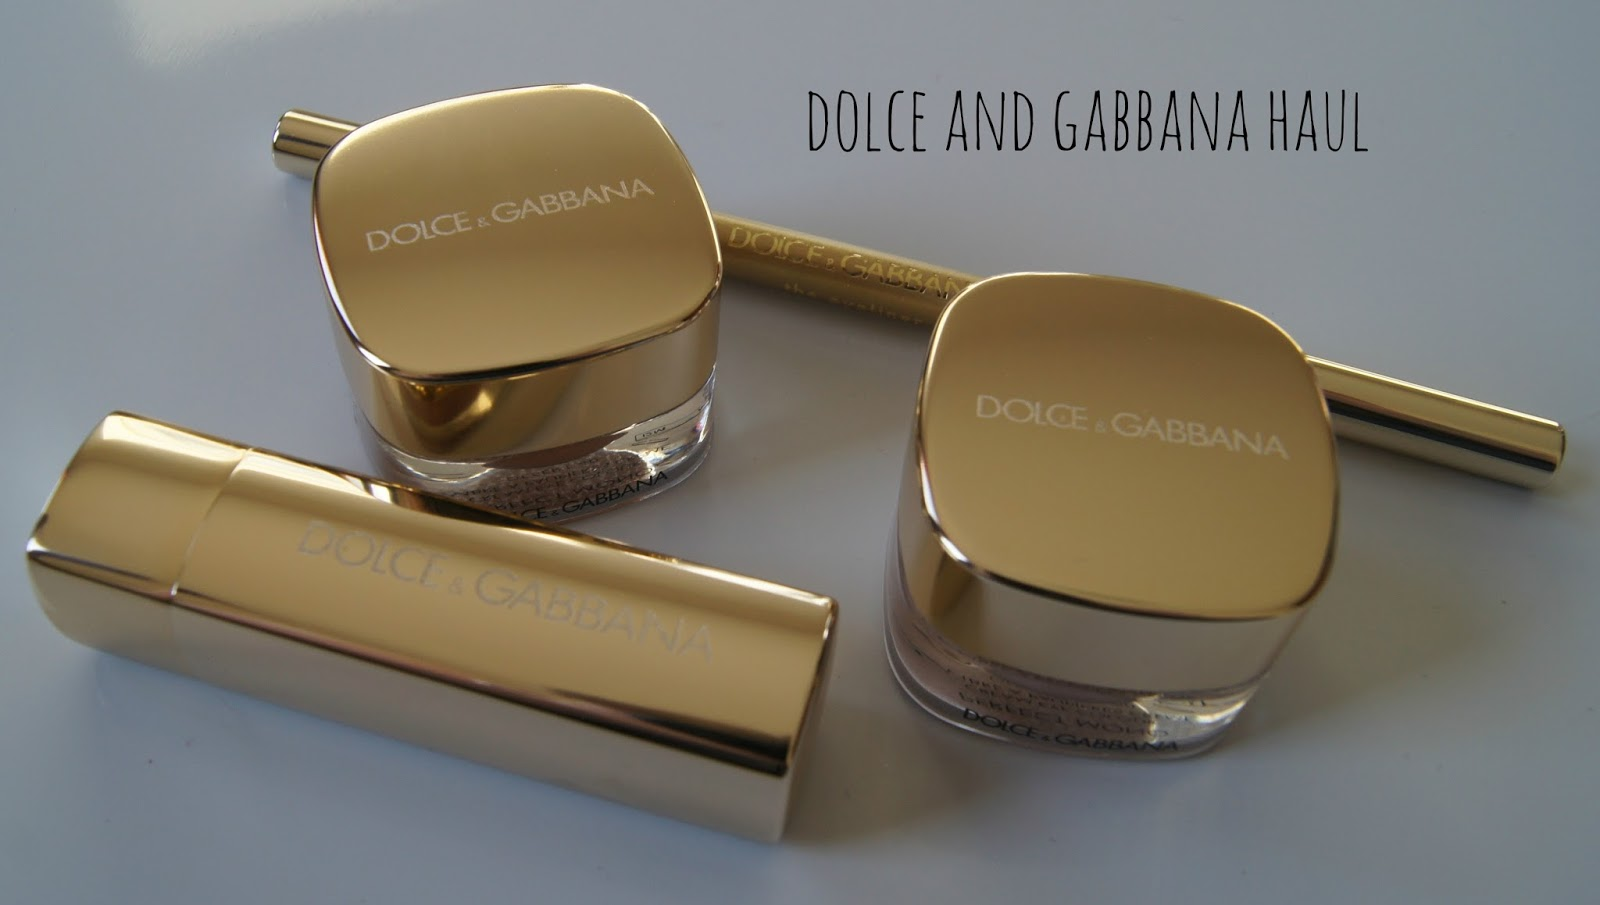 Dolce and Gabbana make up